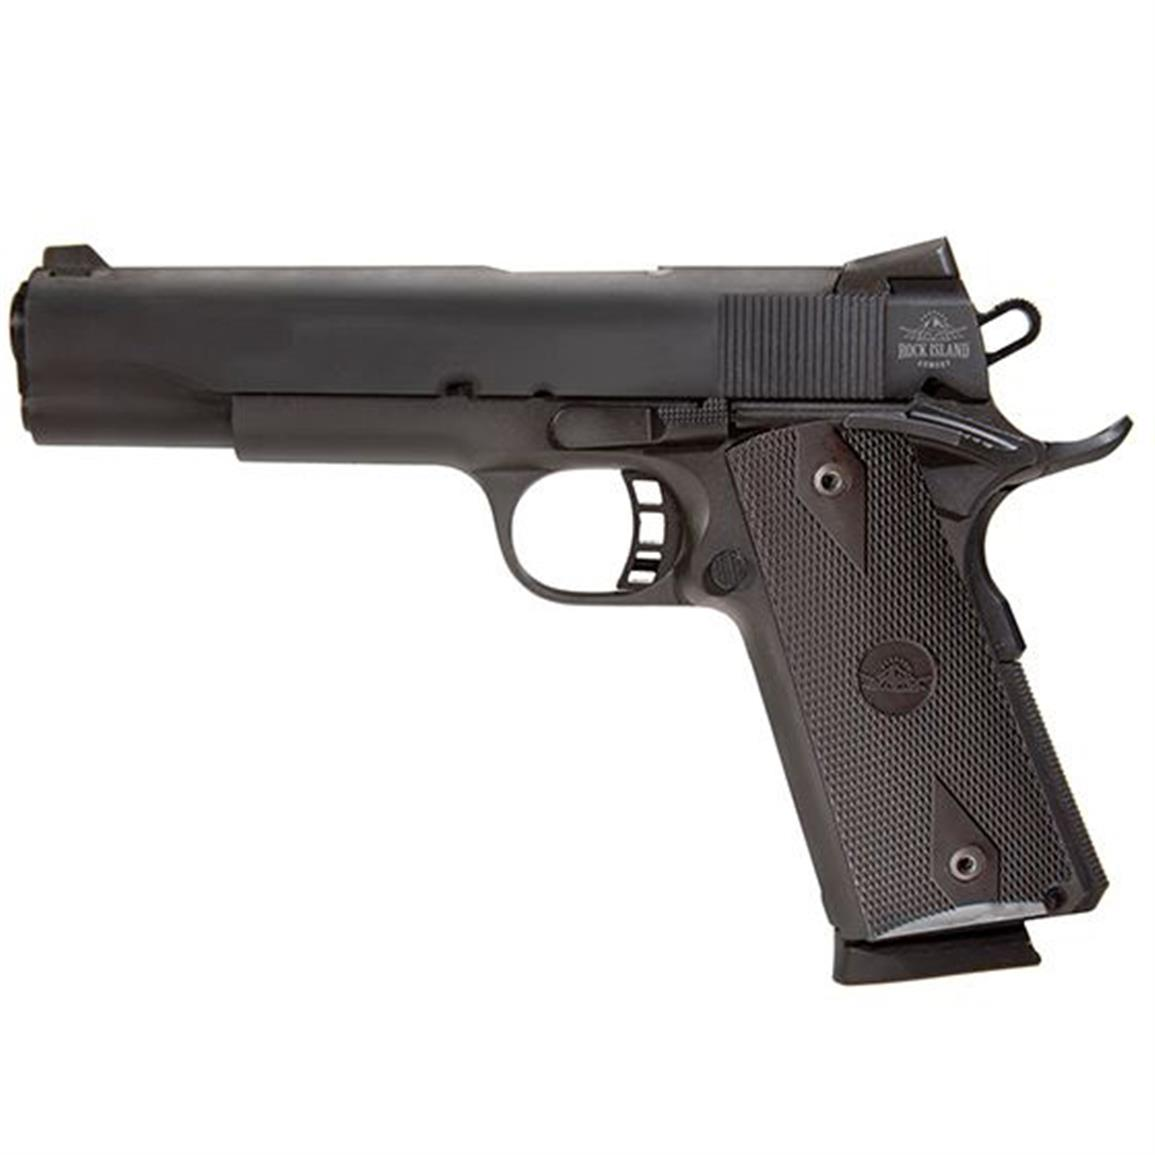 "Rock Island Armory 1911 Tactical Full Size, Semi-Automatic, .45 ACP, 5"" Barrel,  8 Rounds"